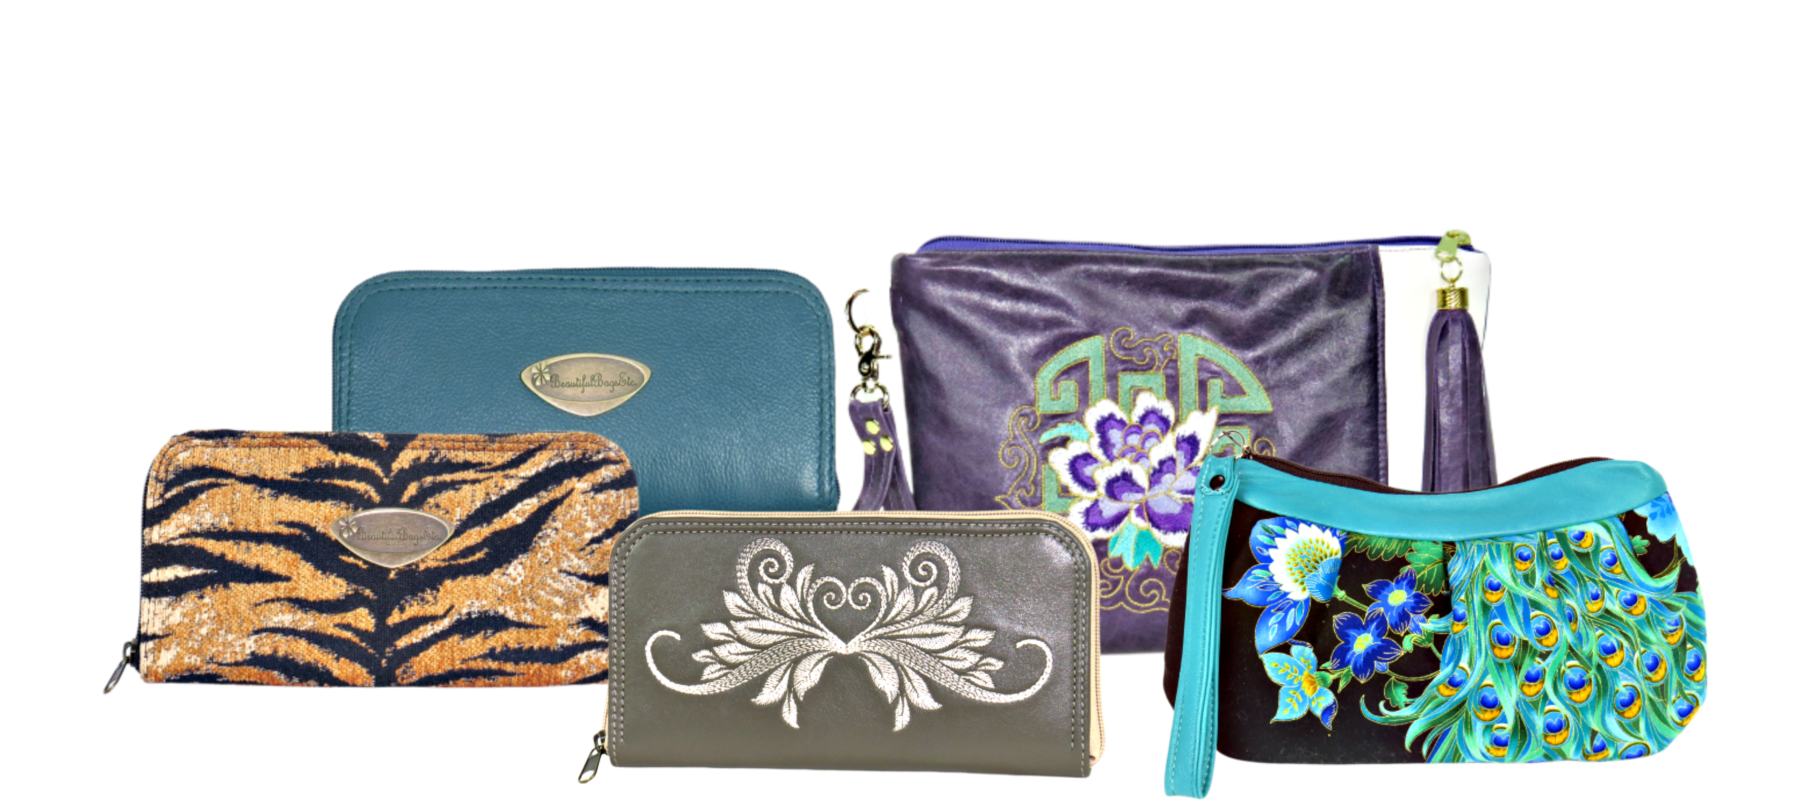 Leather and Tapestry wallets clutches and zipper pouches made in USA